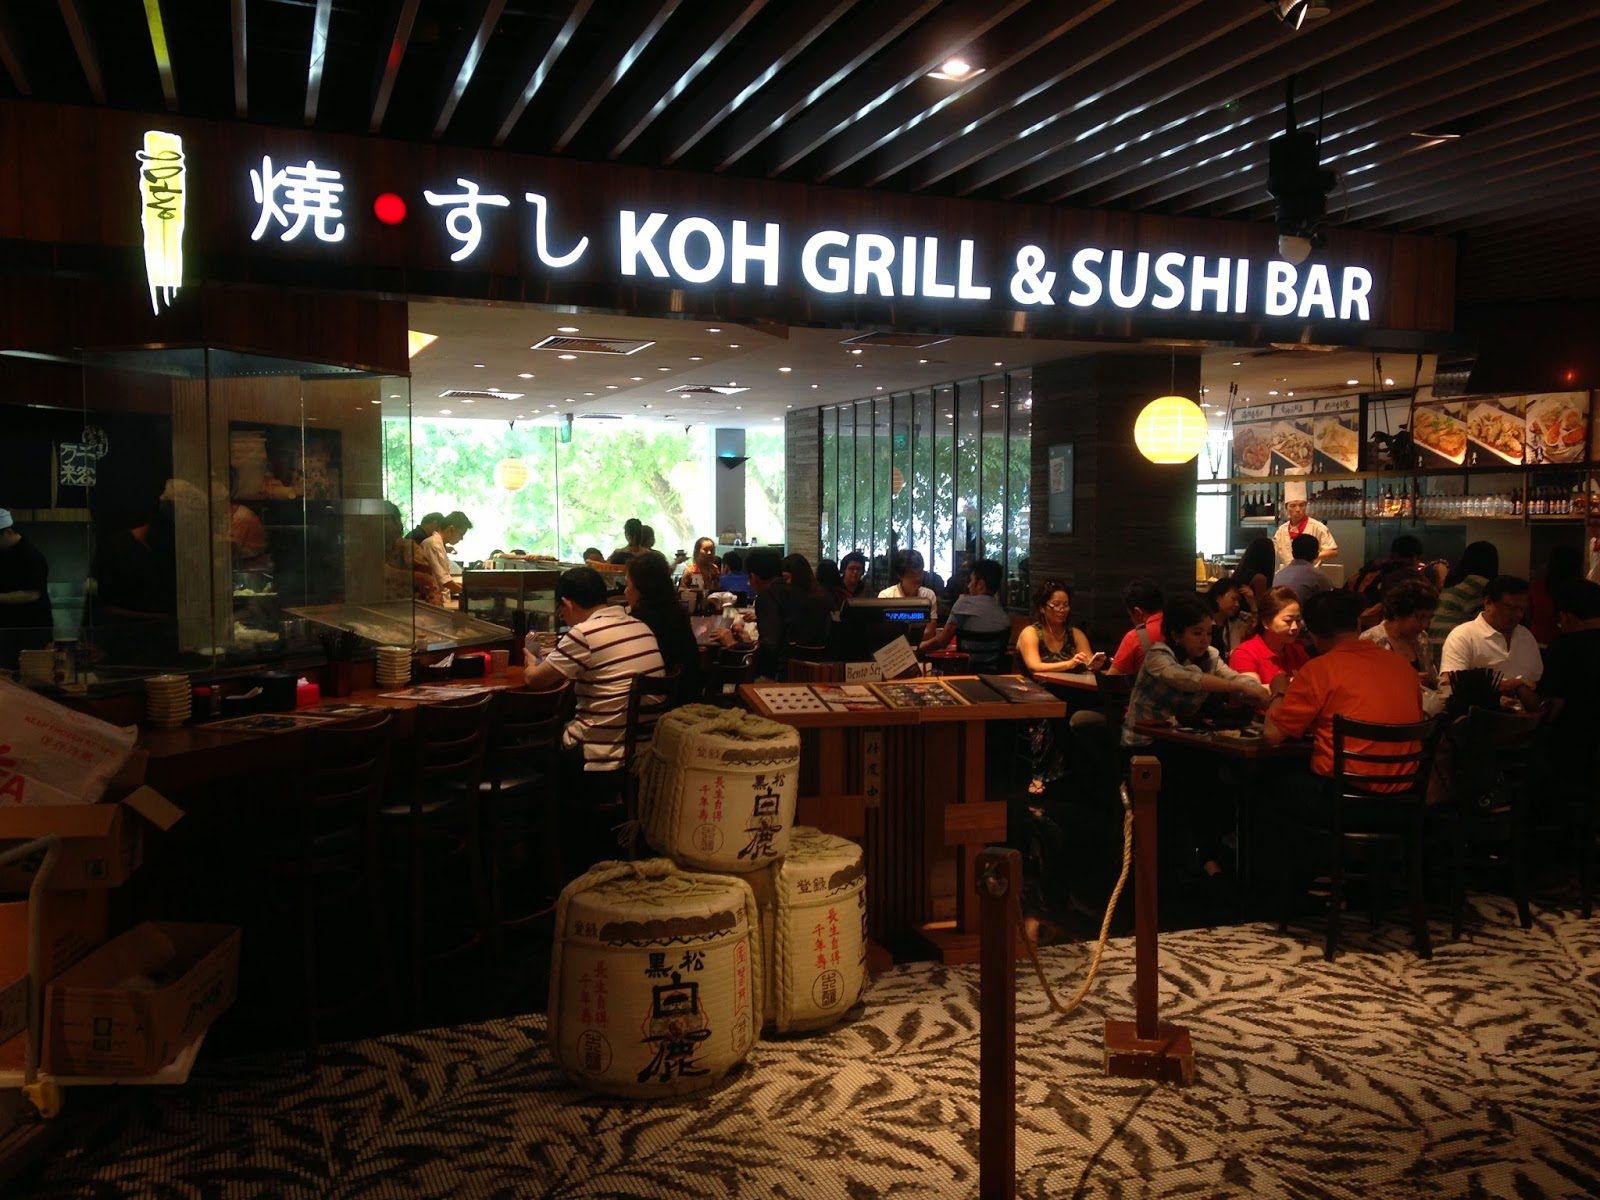 Koh Sushi And Grill Koh Grill Sushi Bar For